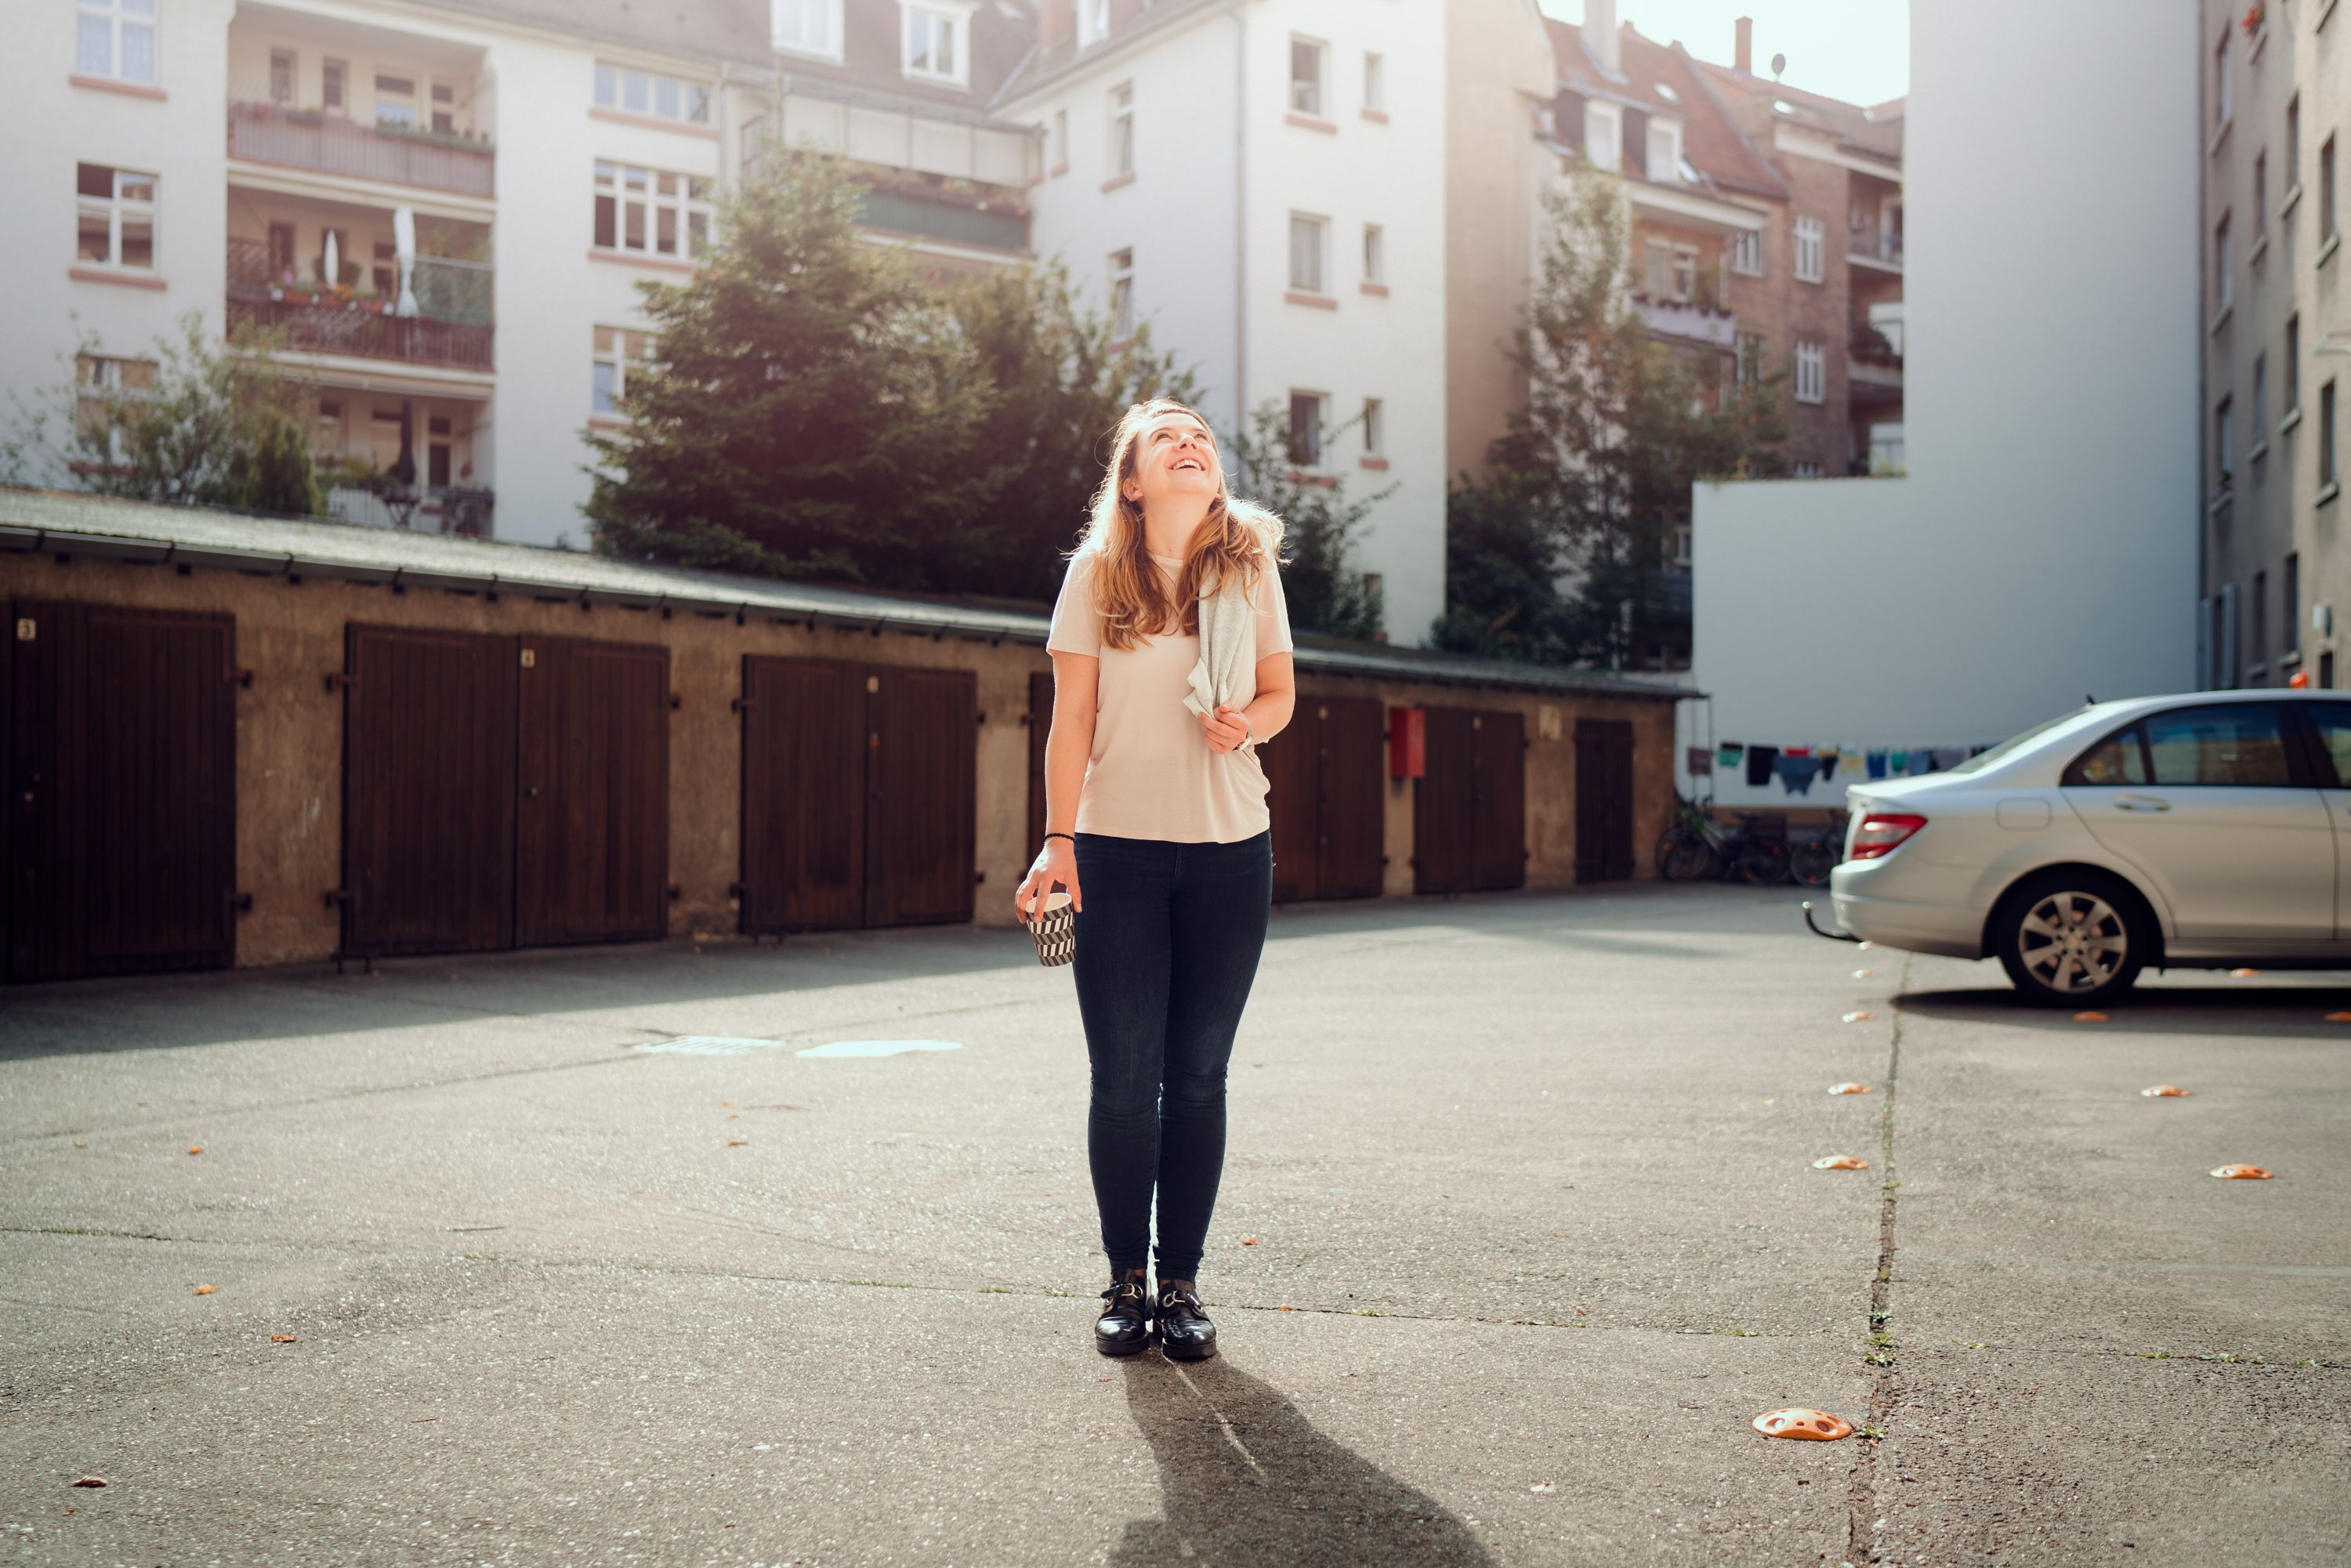 Marie in front of garage